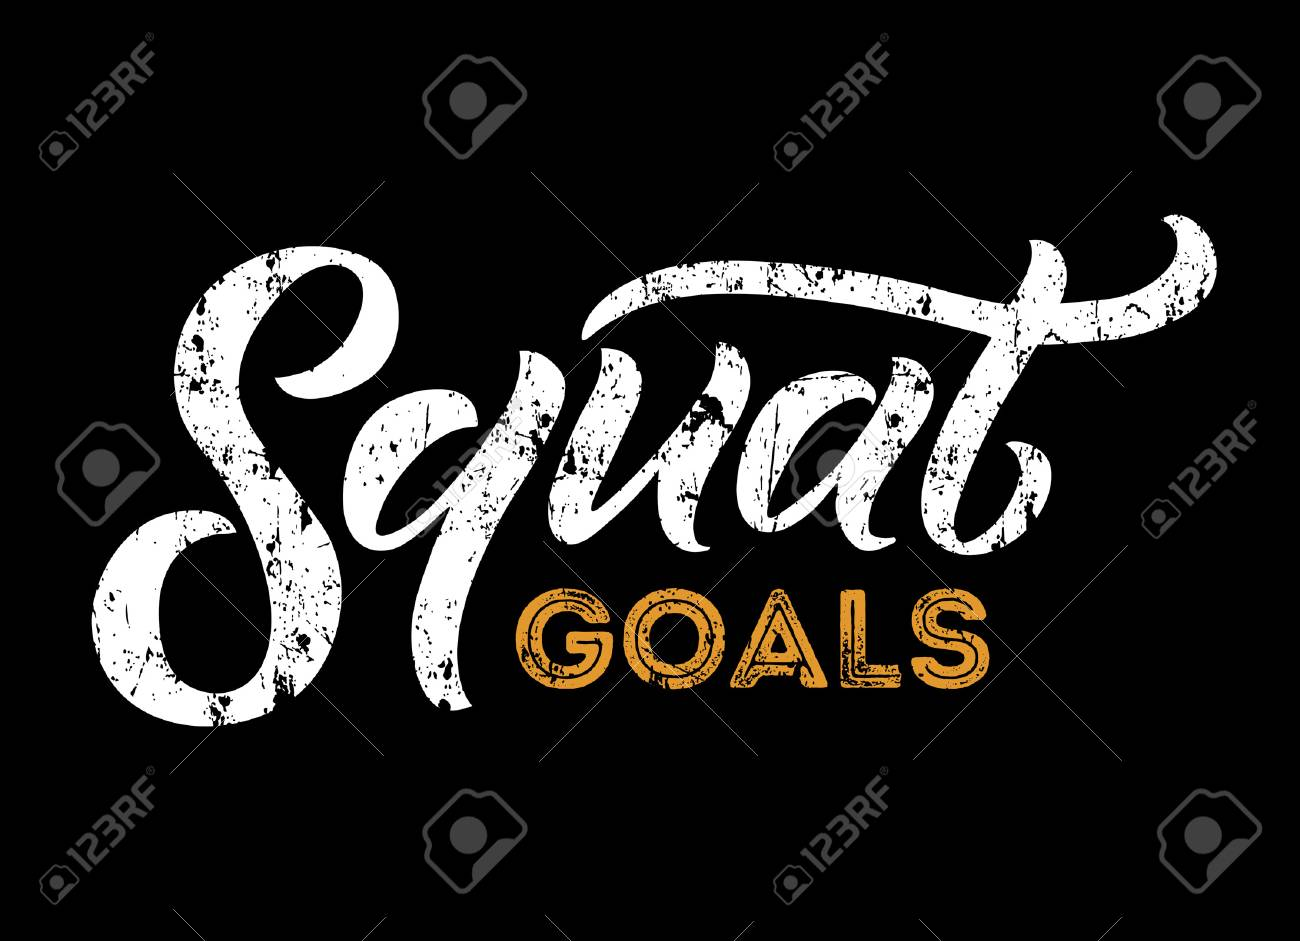 Squat Goals Motivational Quote Gym Print With Grunge Effect Workout Inspirational Poster